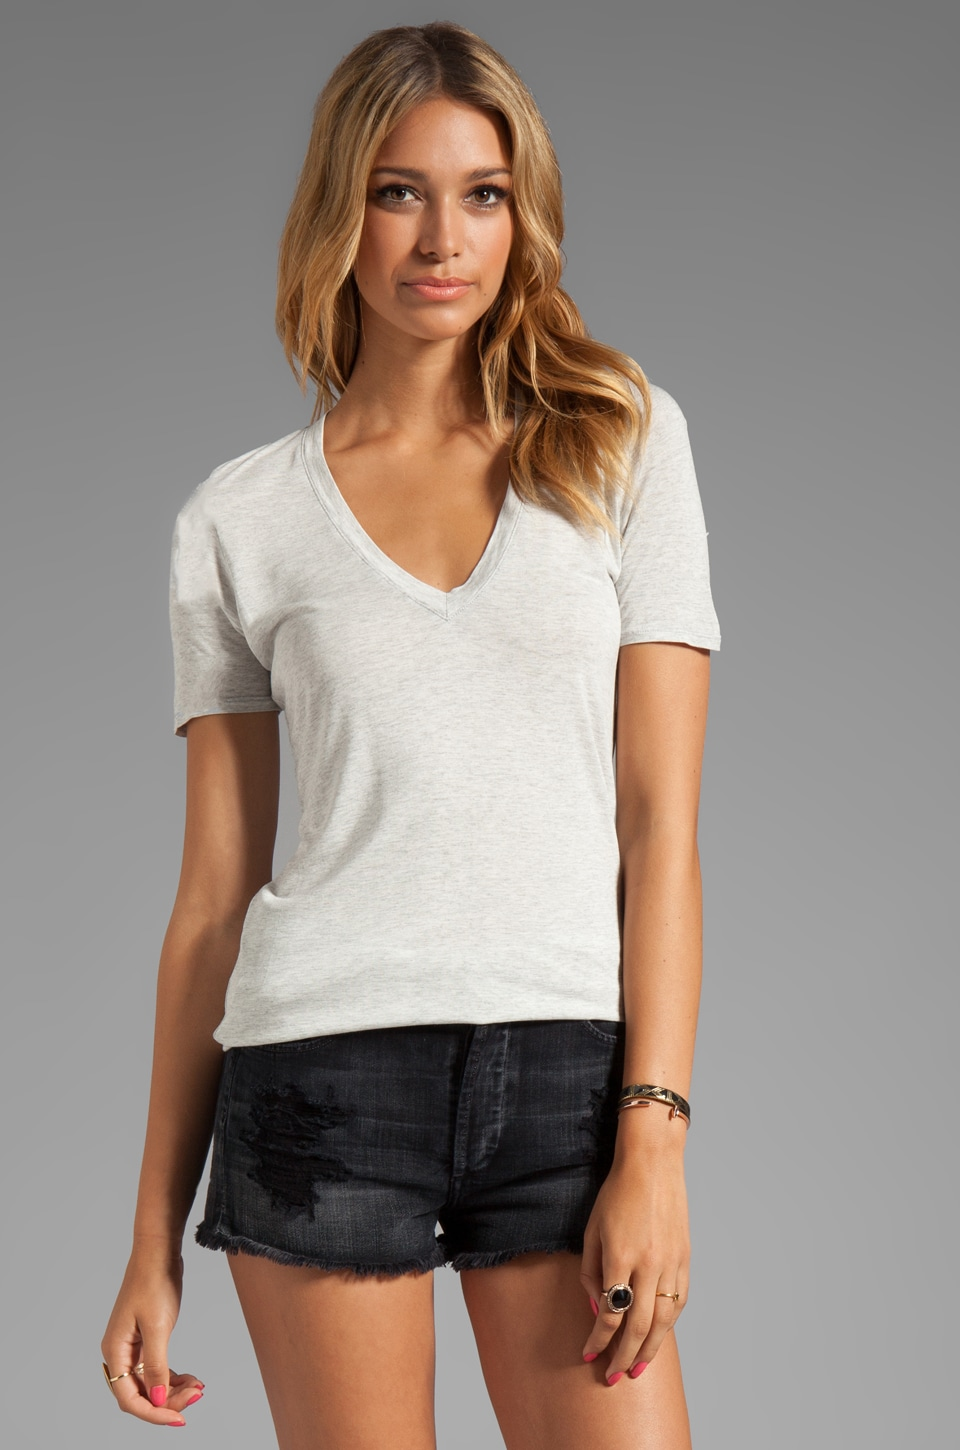 MONROW Rayon Basic V-Neck Tee in Ash